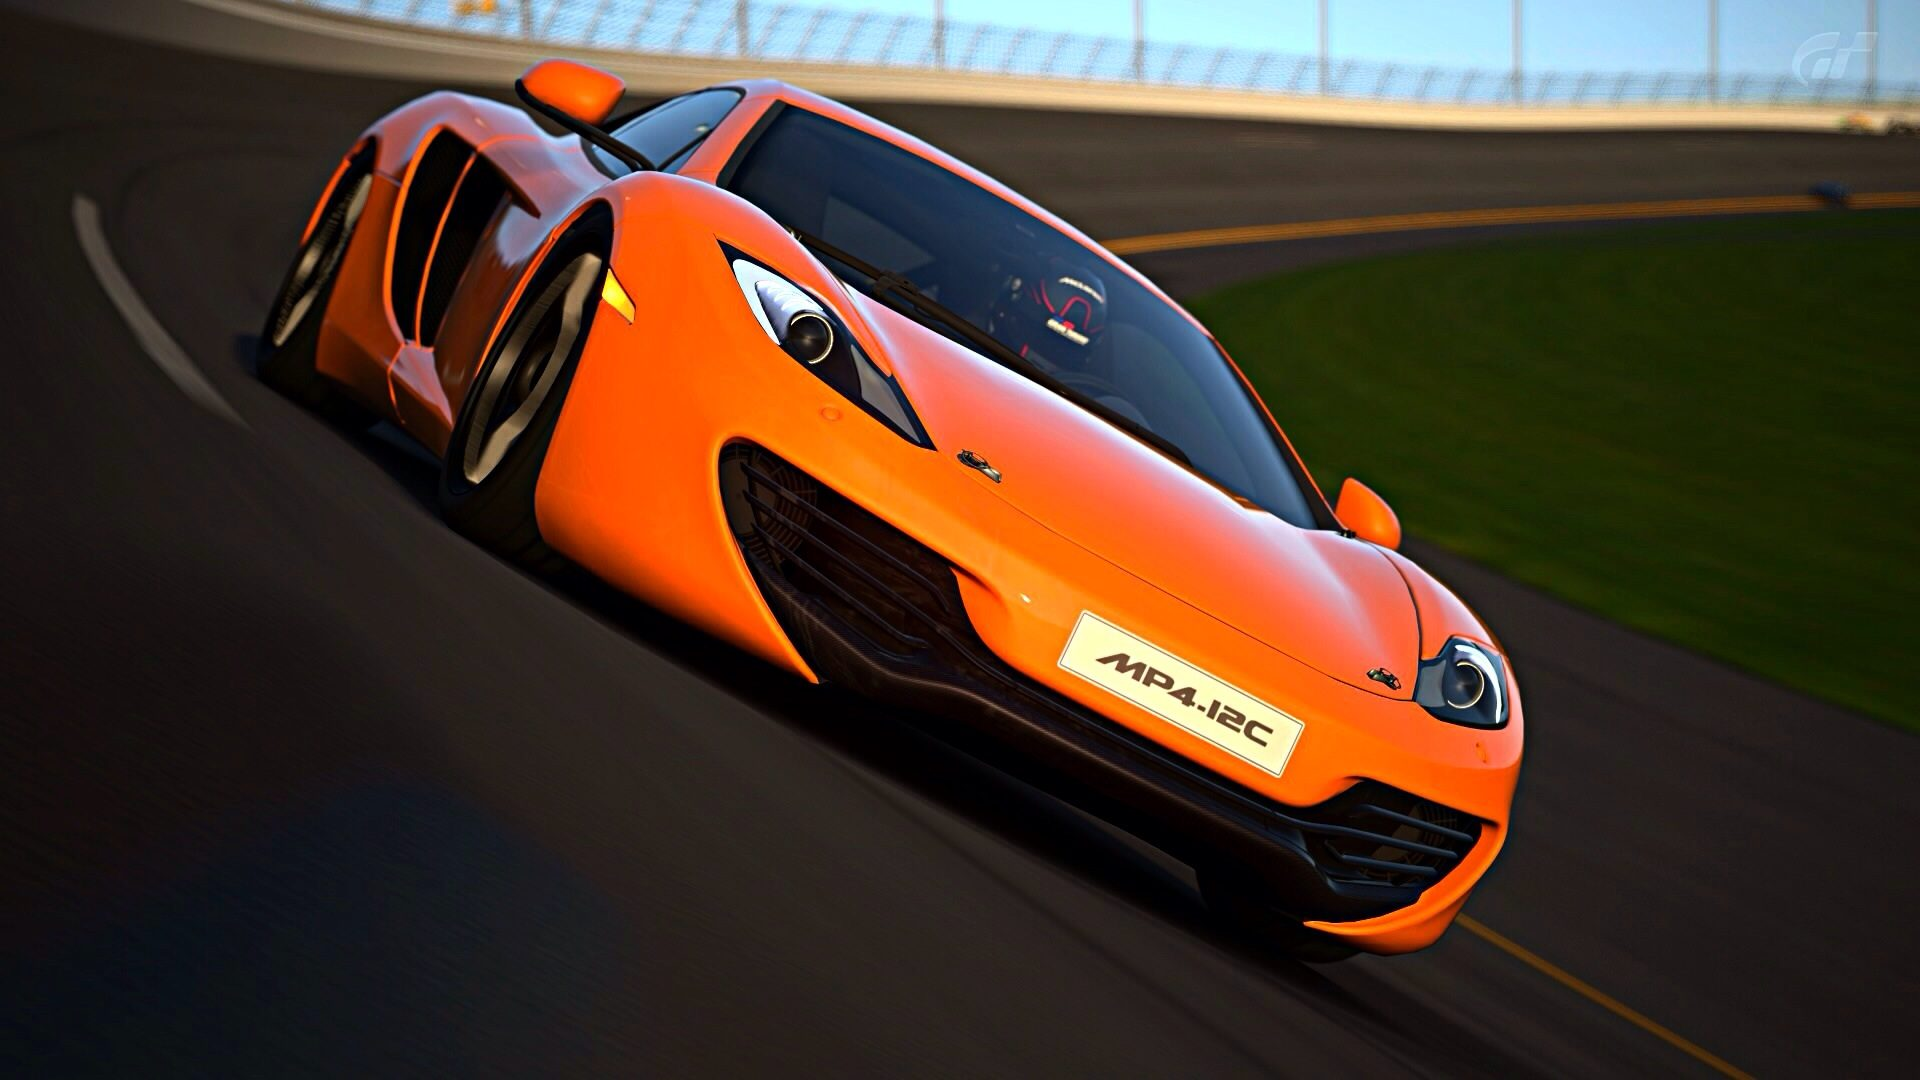 MP4-12C GTC Daytona Road Course (1).jpg